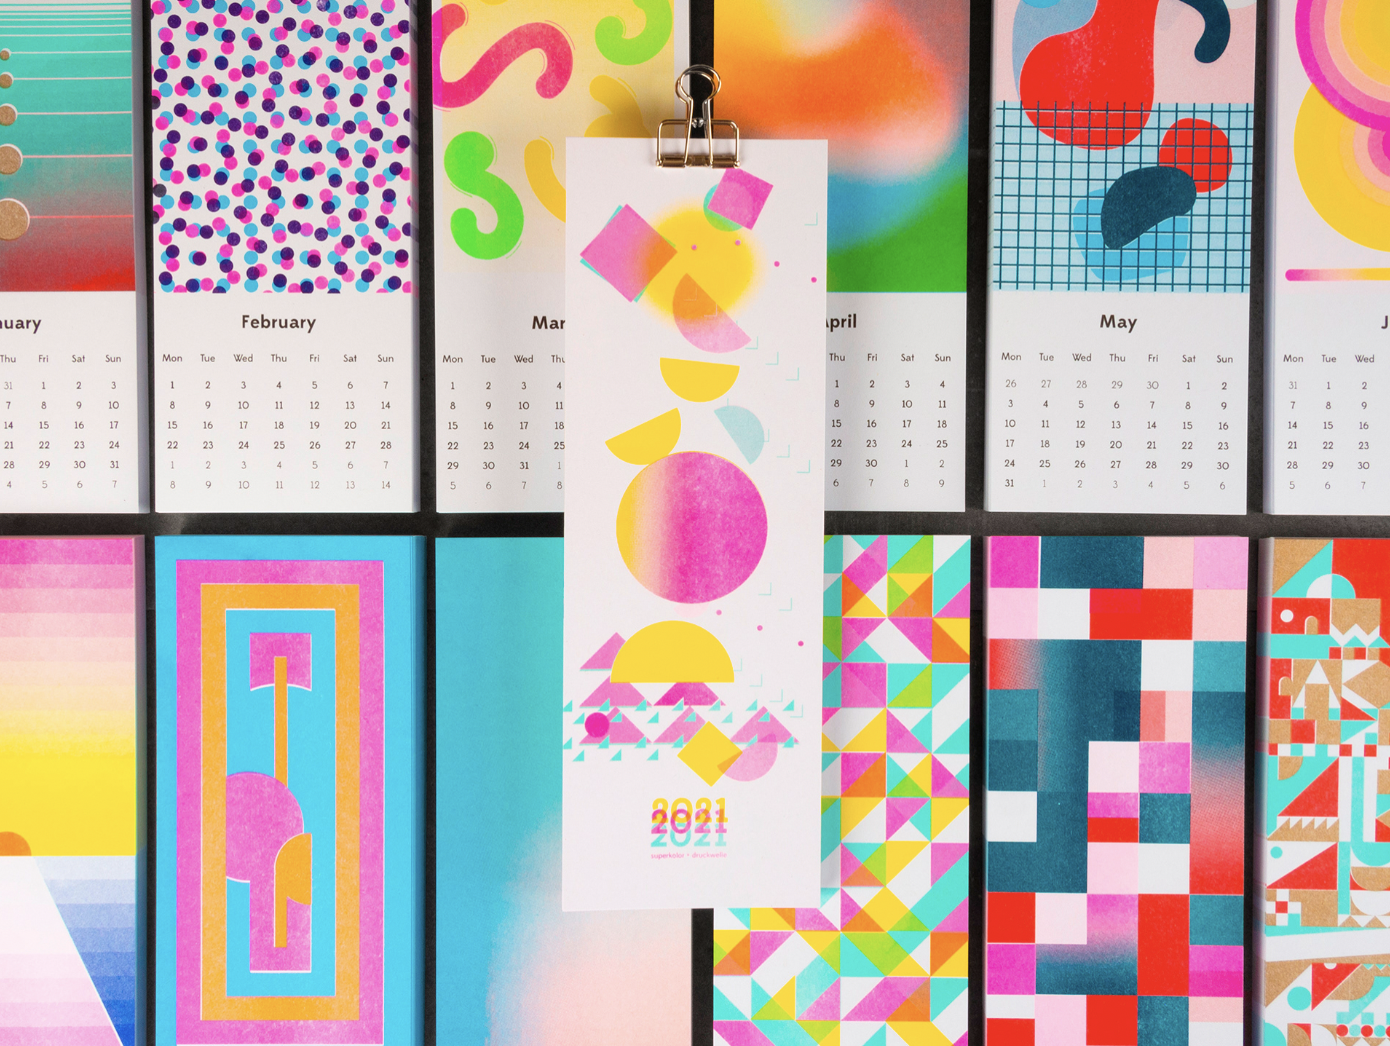 Risograph Wall Calendar by Superkolor in All the Colors of the Rainbow